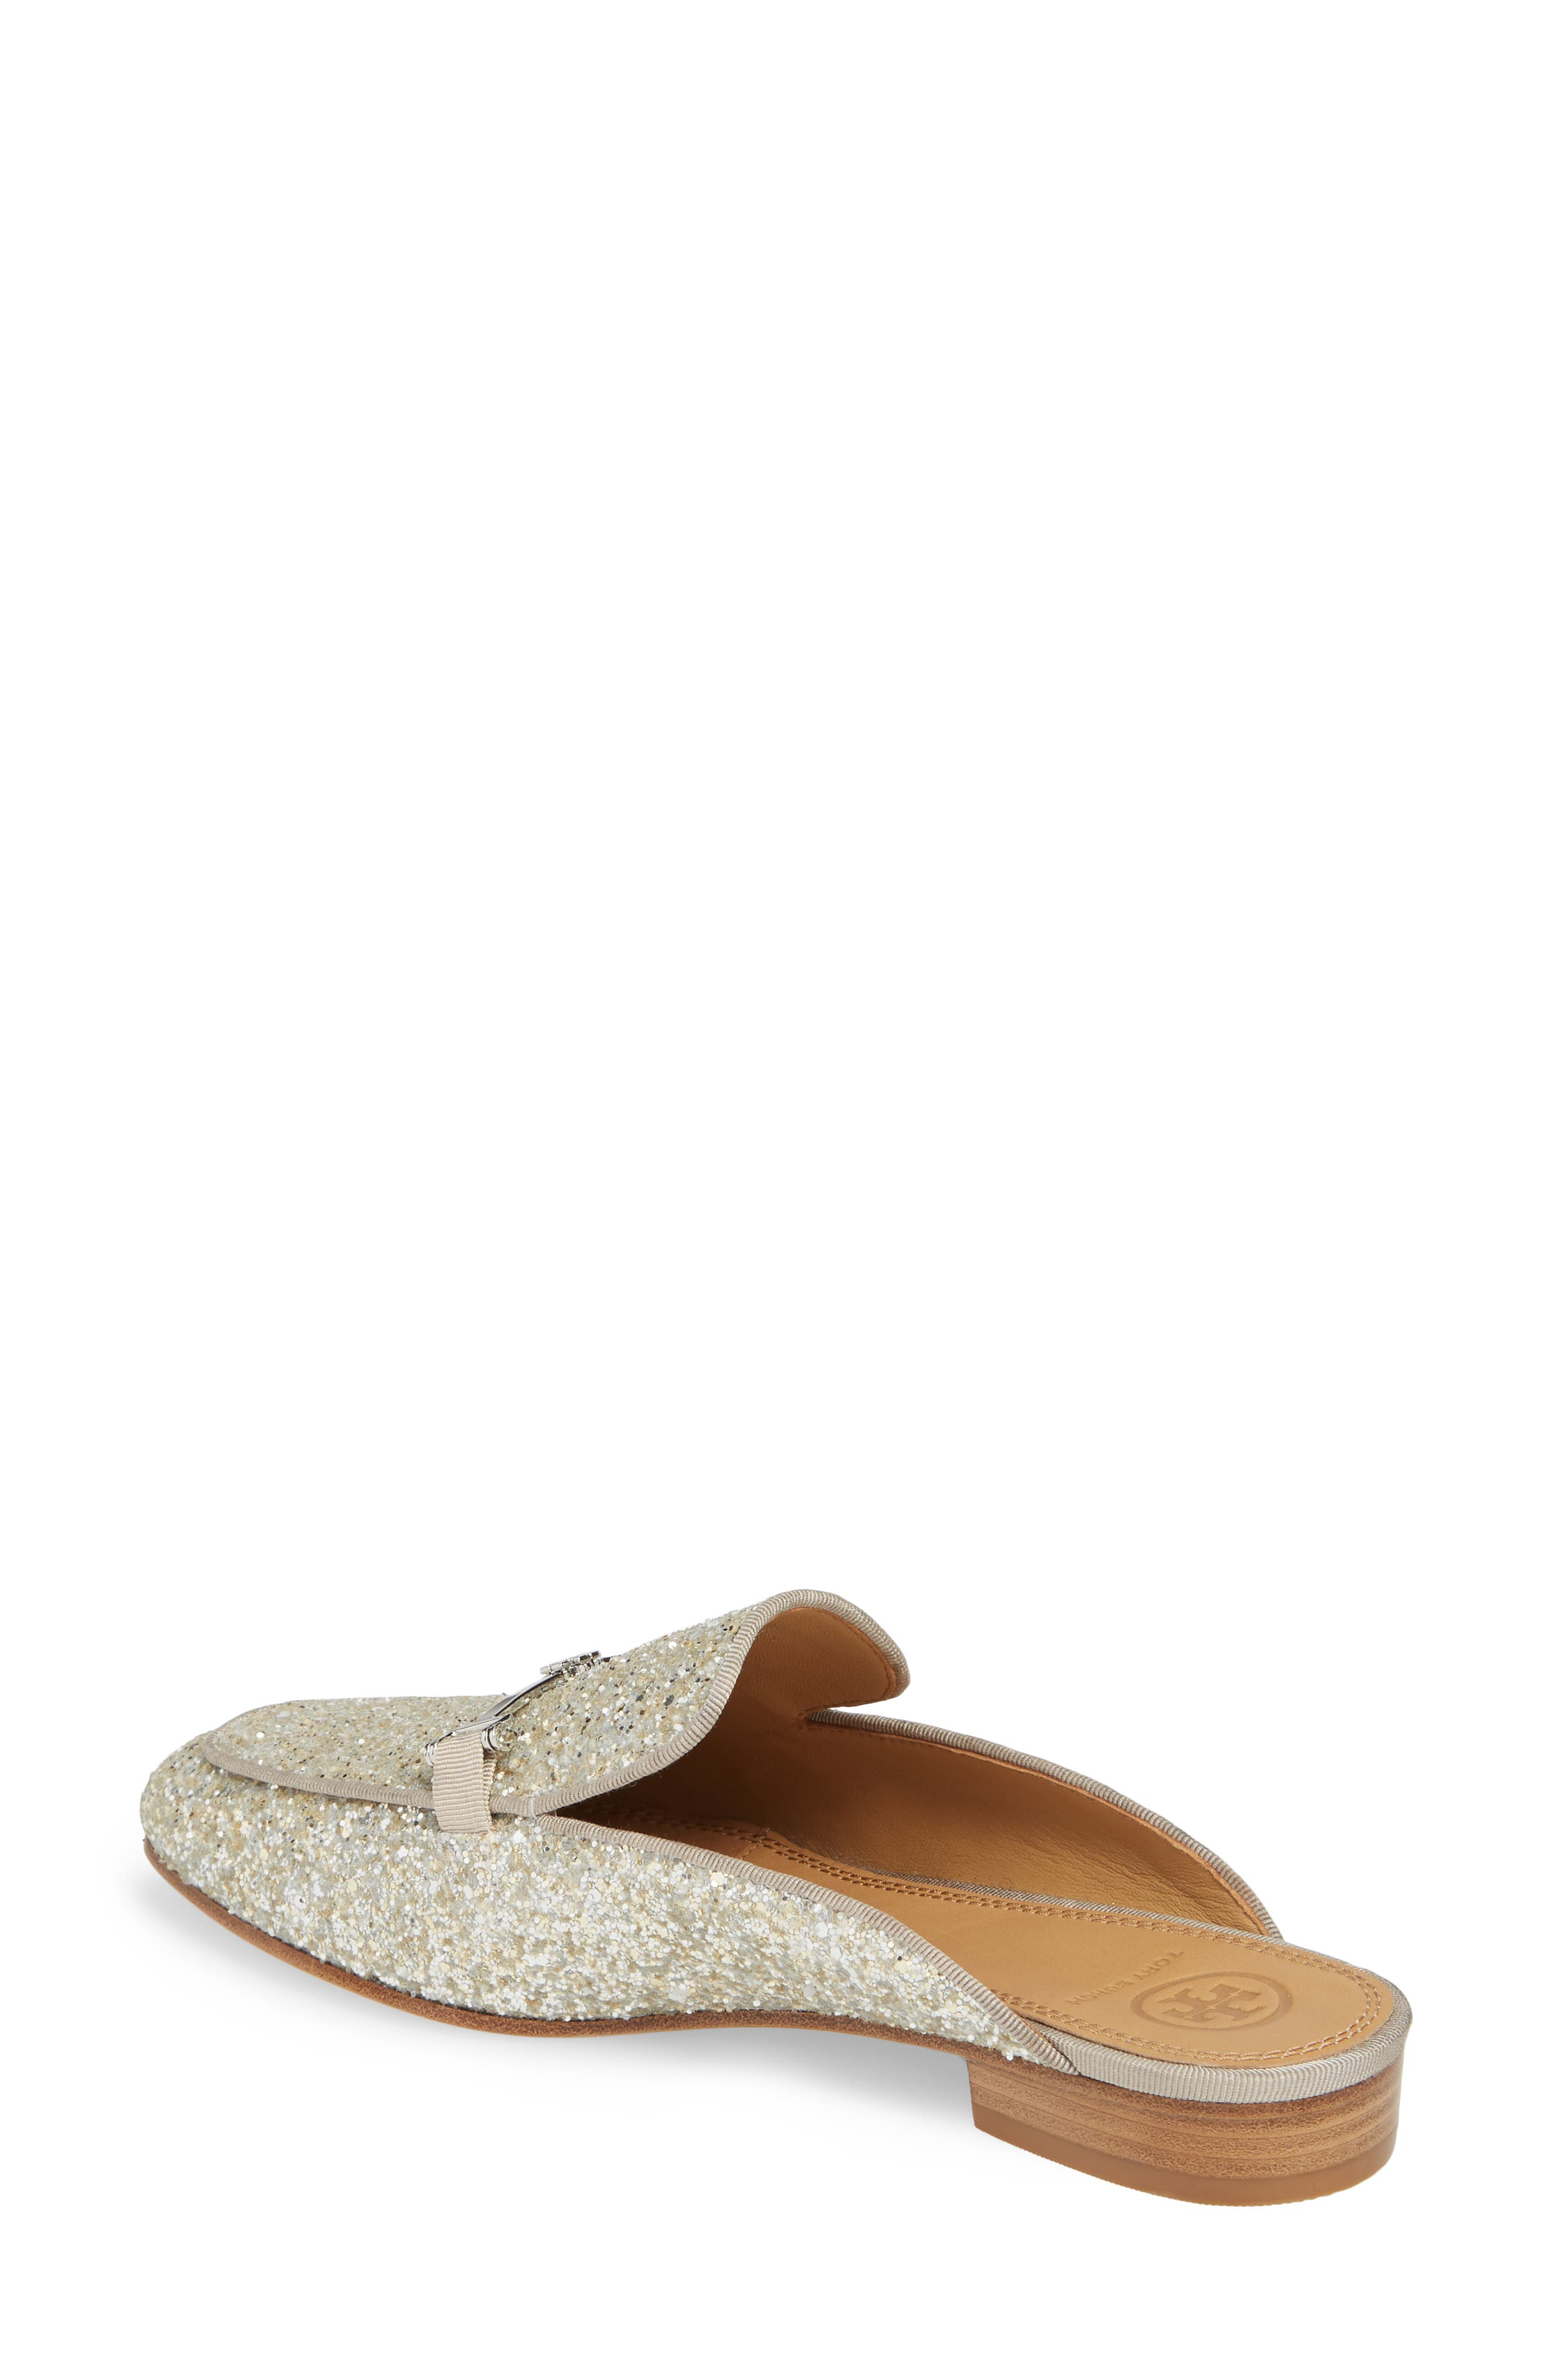 Amelia Loafer Mule,                             Alternate thumbnail 2, color,                             053